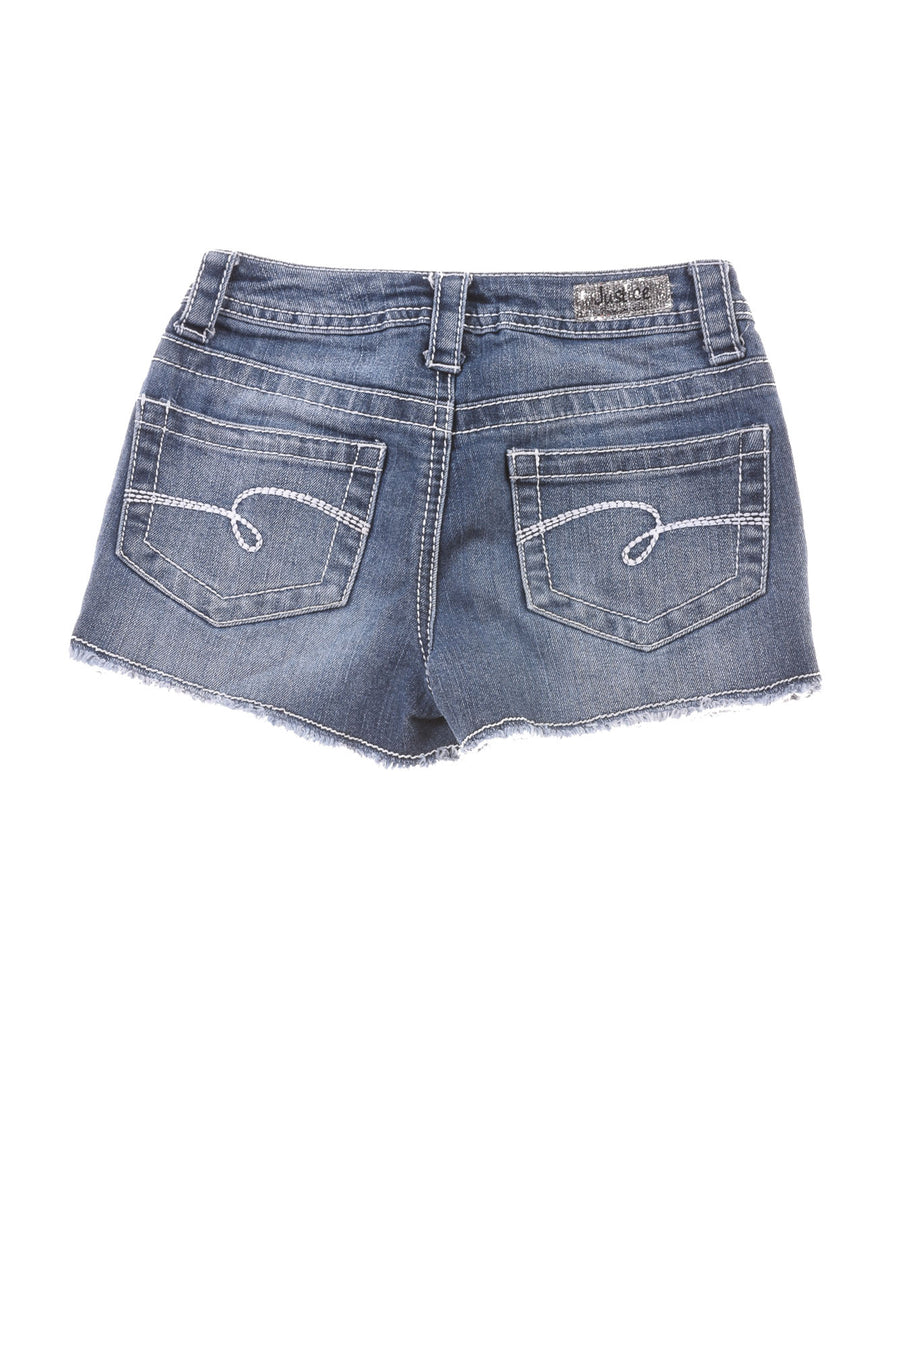 USED Justice Girl's Shorts 10 Blue, Red, & White